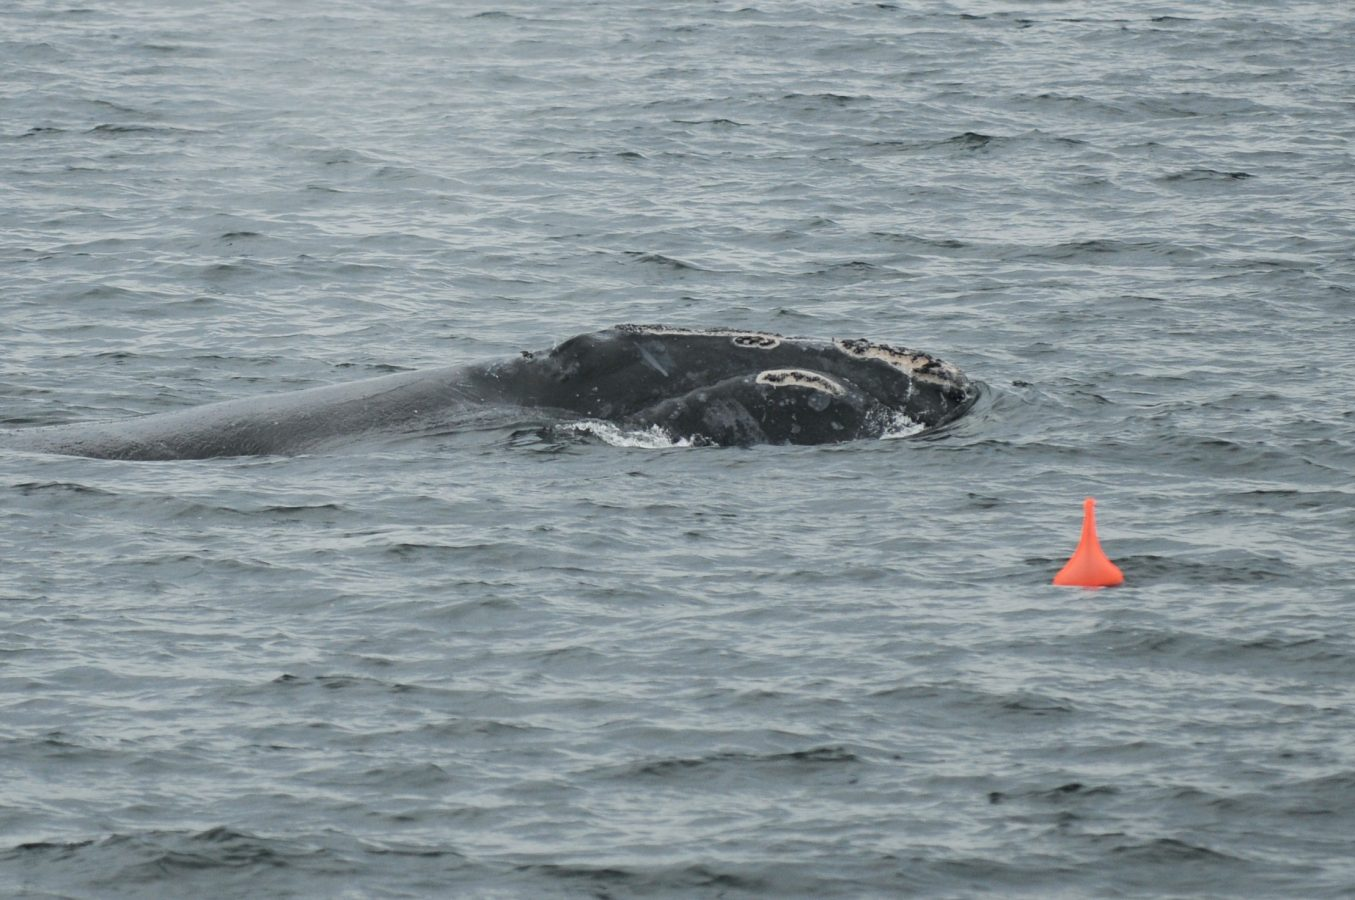 A right whale swims past the sonobuoy.